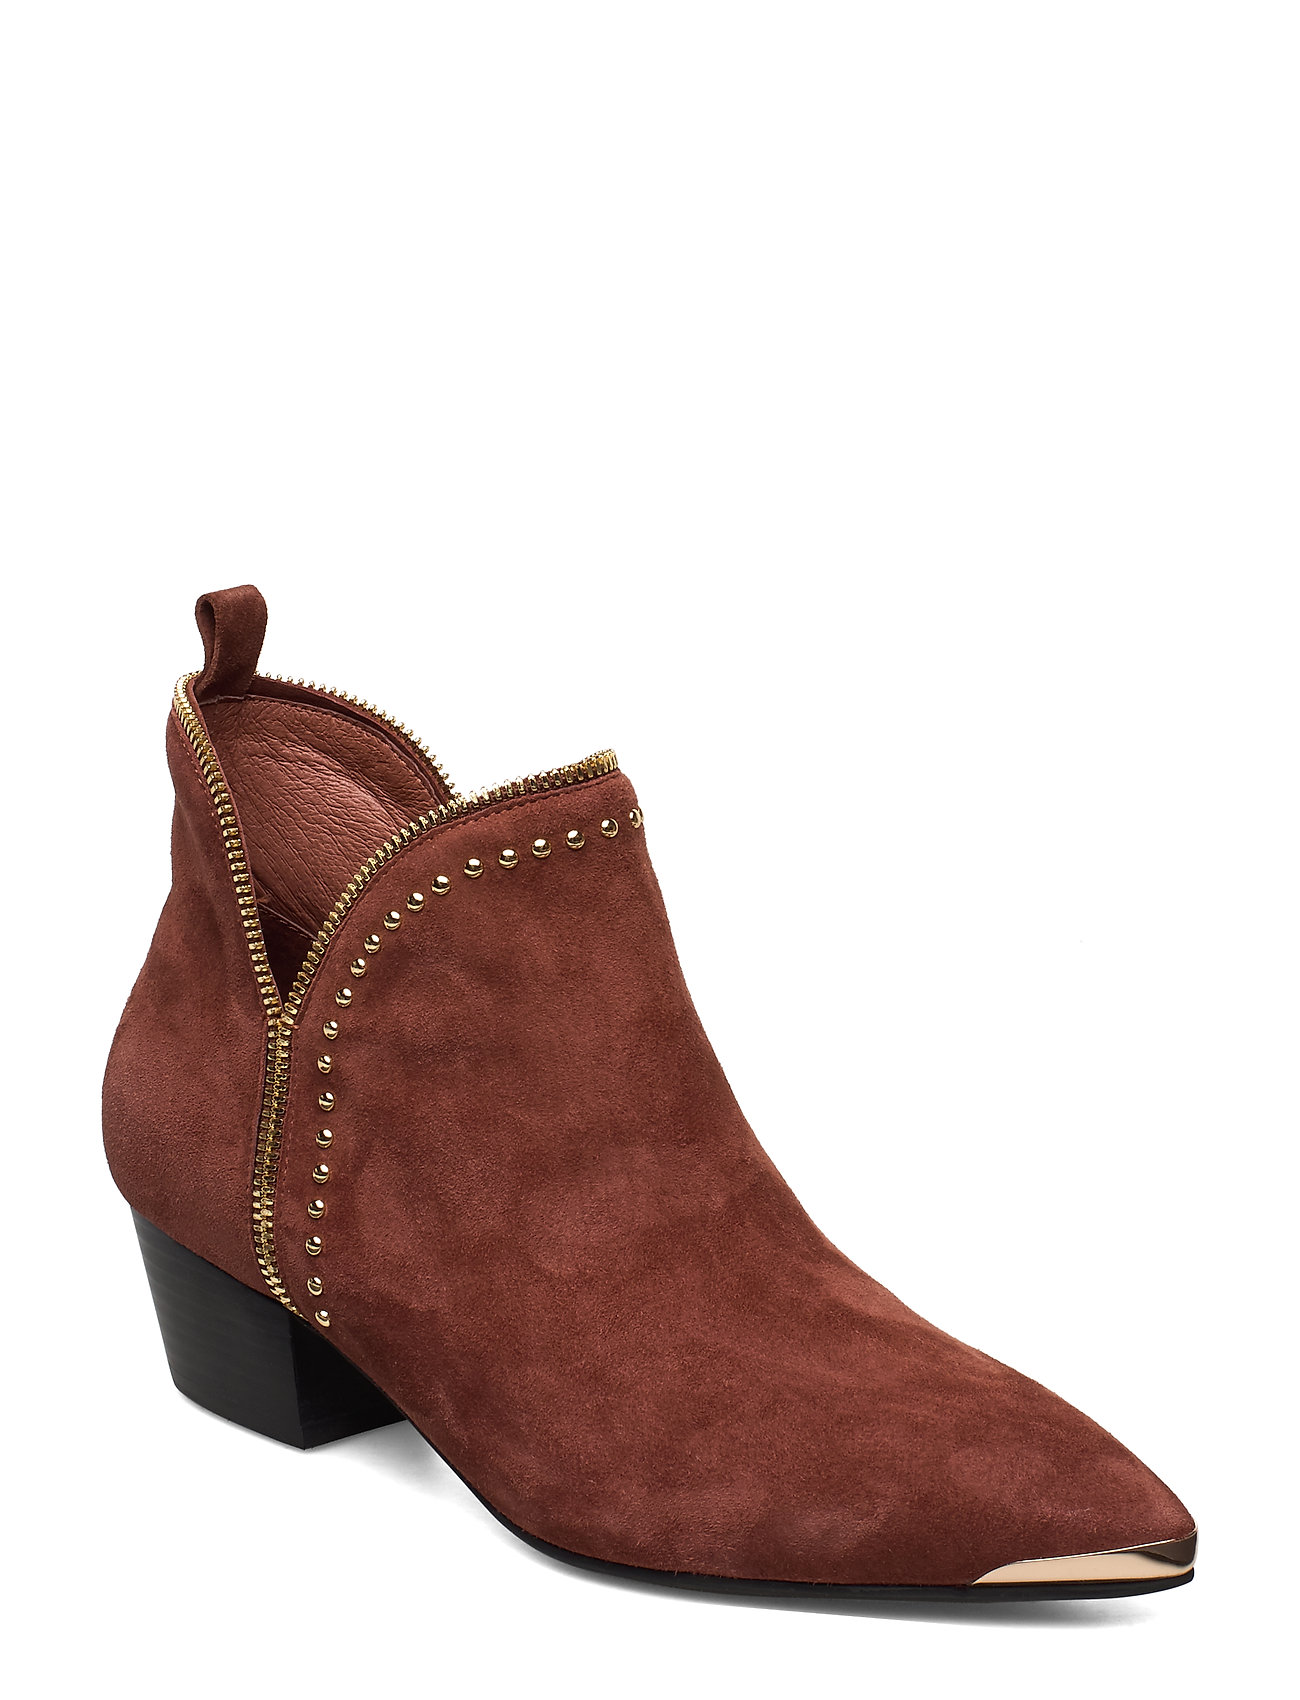 Image of Boot, Rivet Gold Shoes Boots Ankle Boots Ankle Boots With Heel Brun Sofie Schnoor (3344406963)